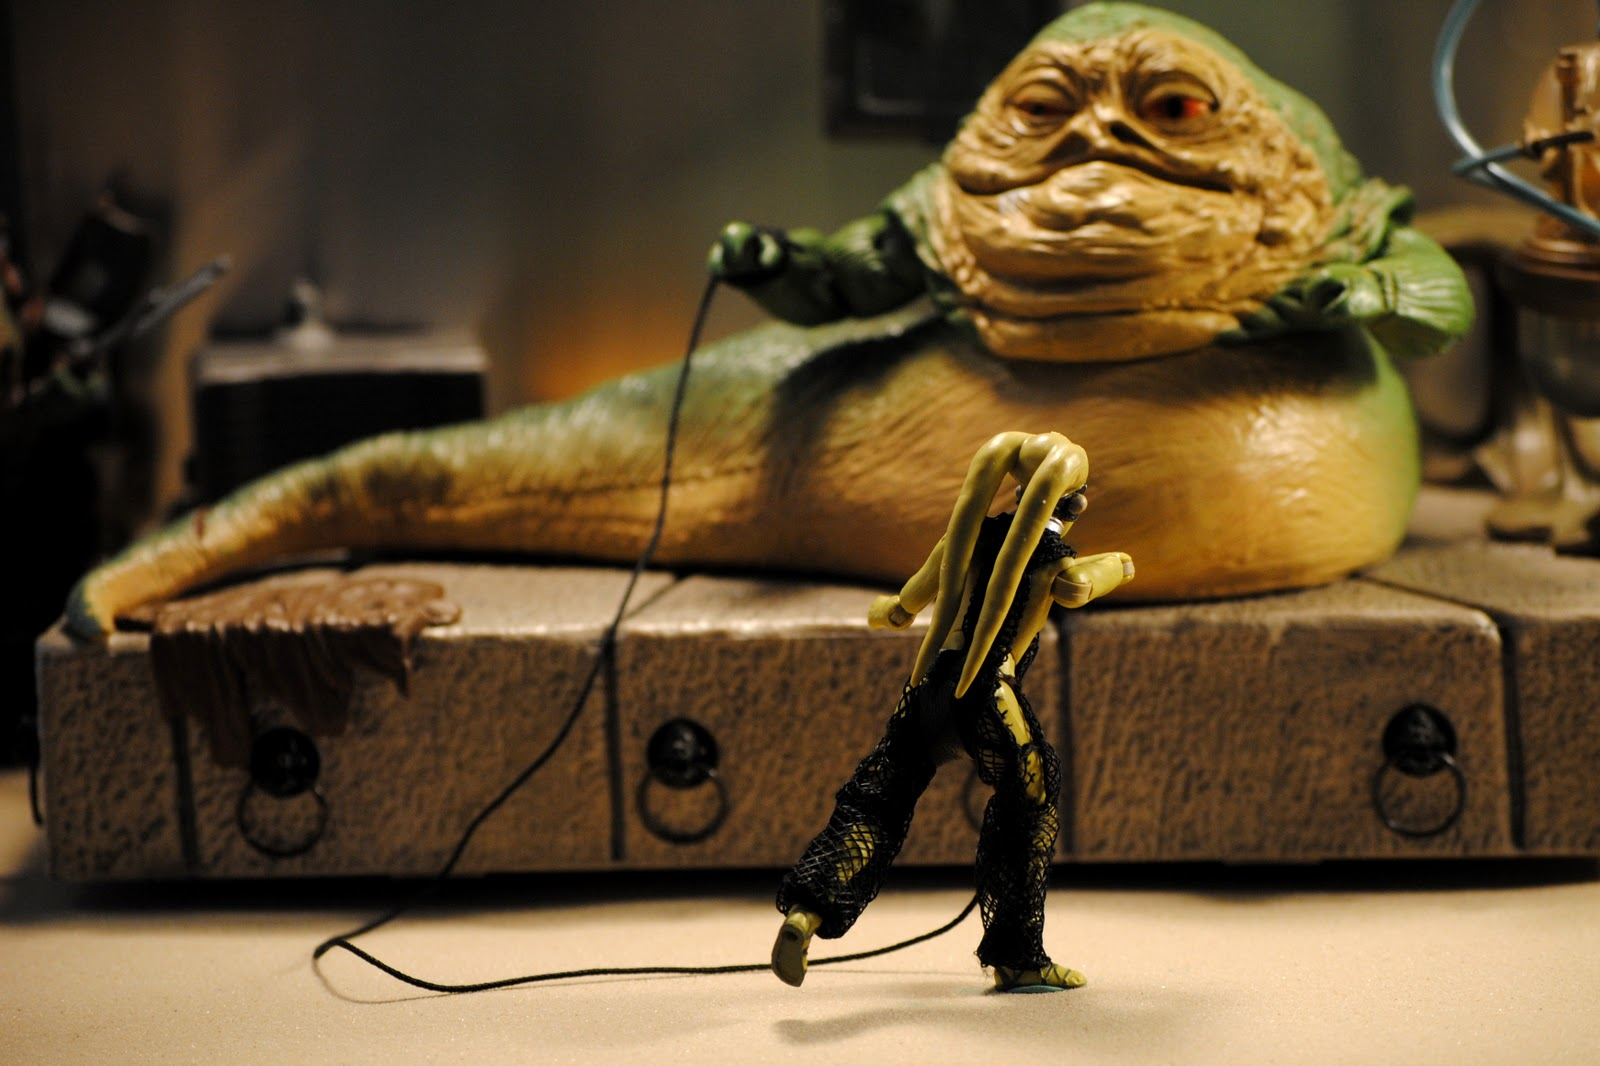 Princess Leia Slave Action Figure - Hot Girls Wallpaper Jabba The Hutt And Oola